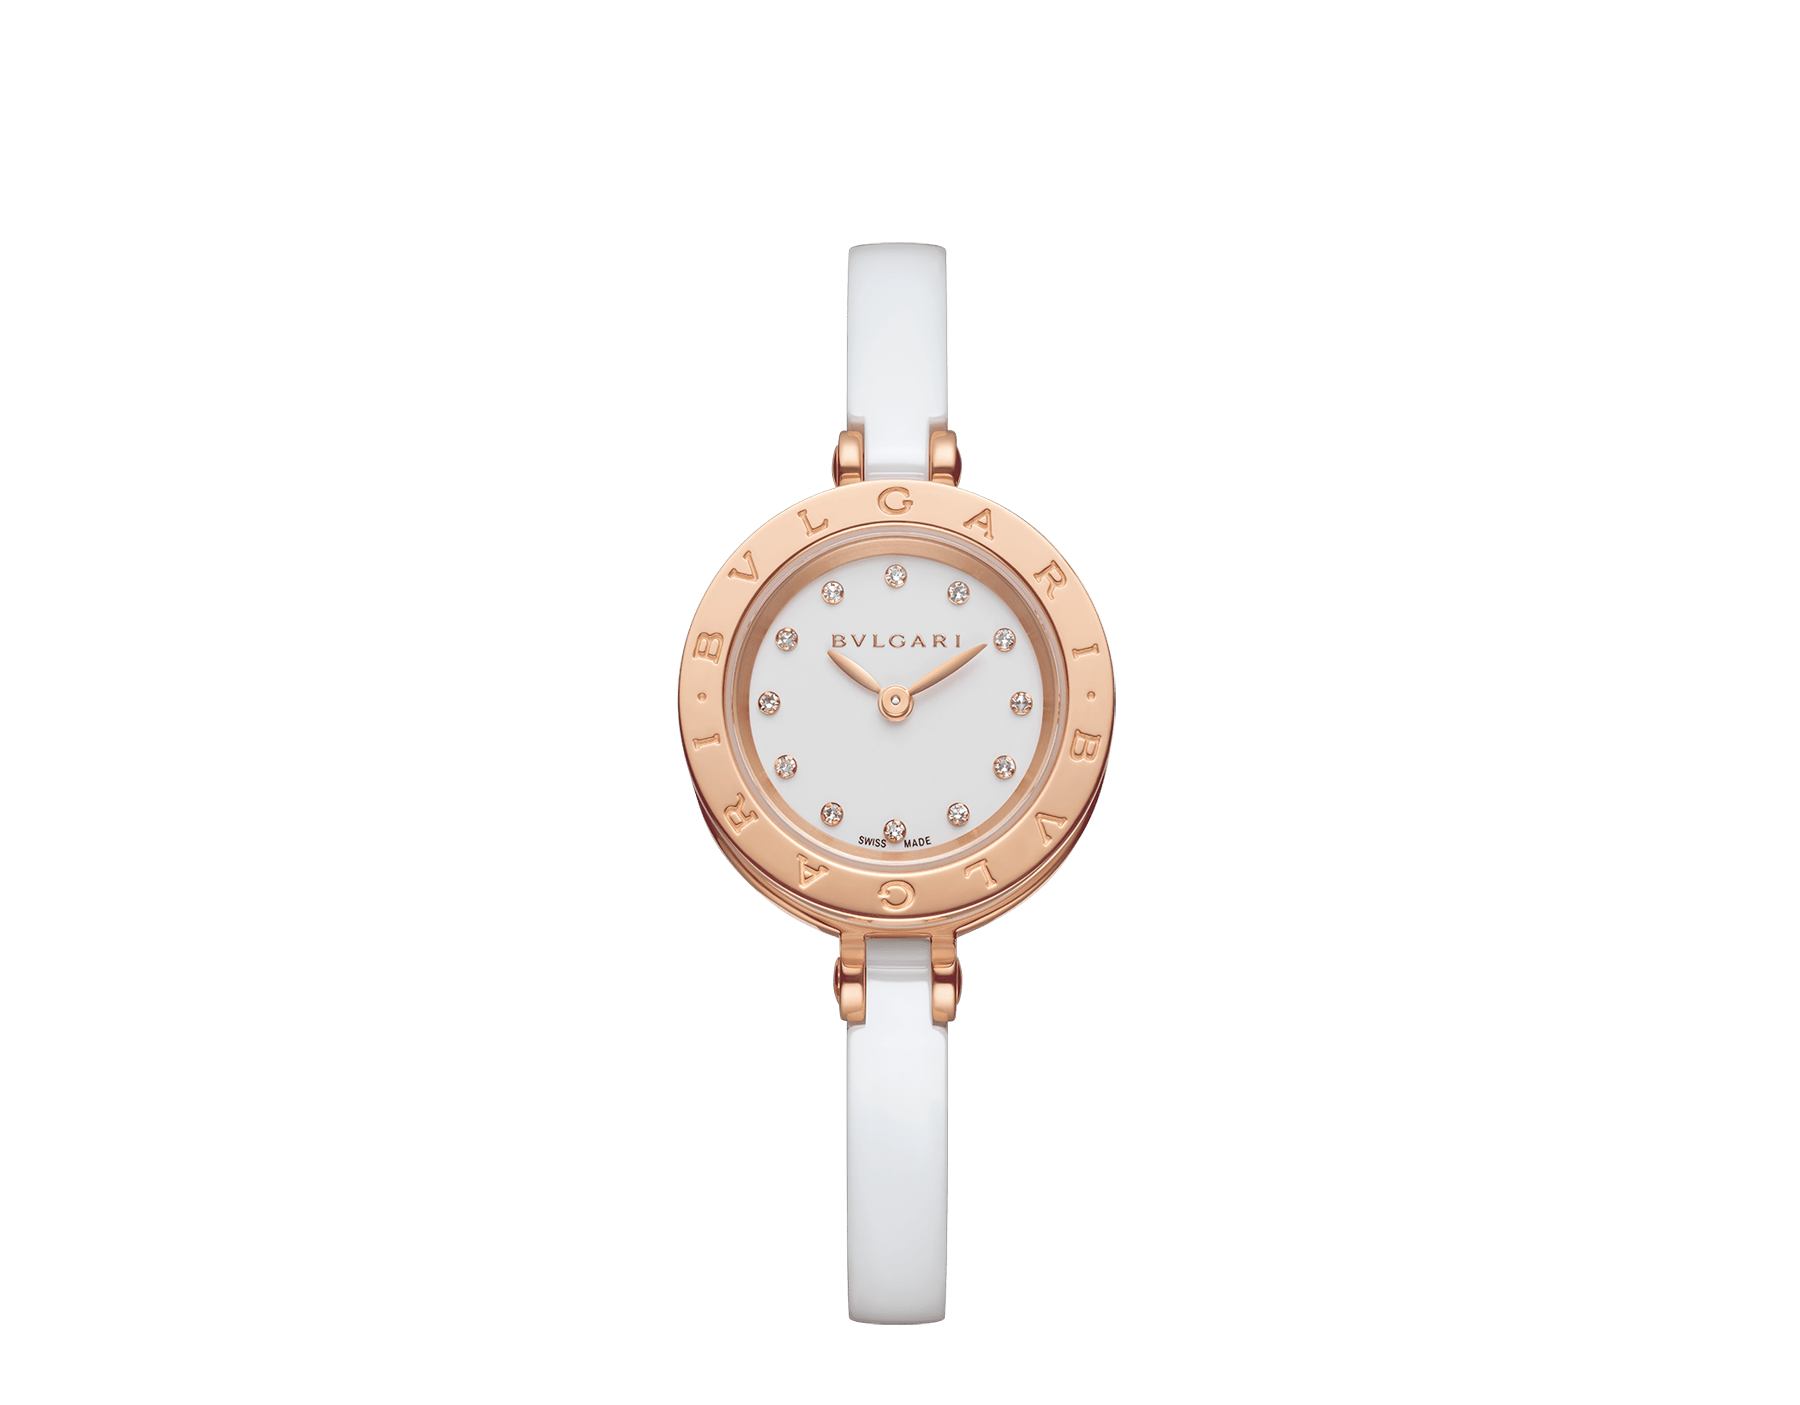 B.zero1 watch with 18 kt rose gold and white ceramic case, white lacquered dial set diamond indexes, white ceramic bangle and 18 kt rose gold clasp. B01watch-white-white-dial3 image 1